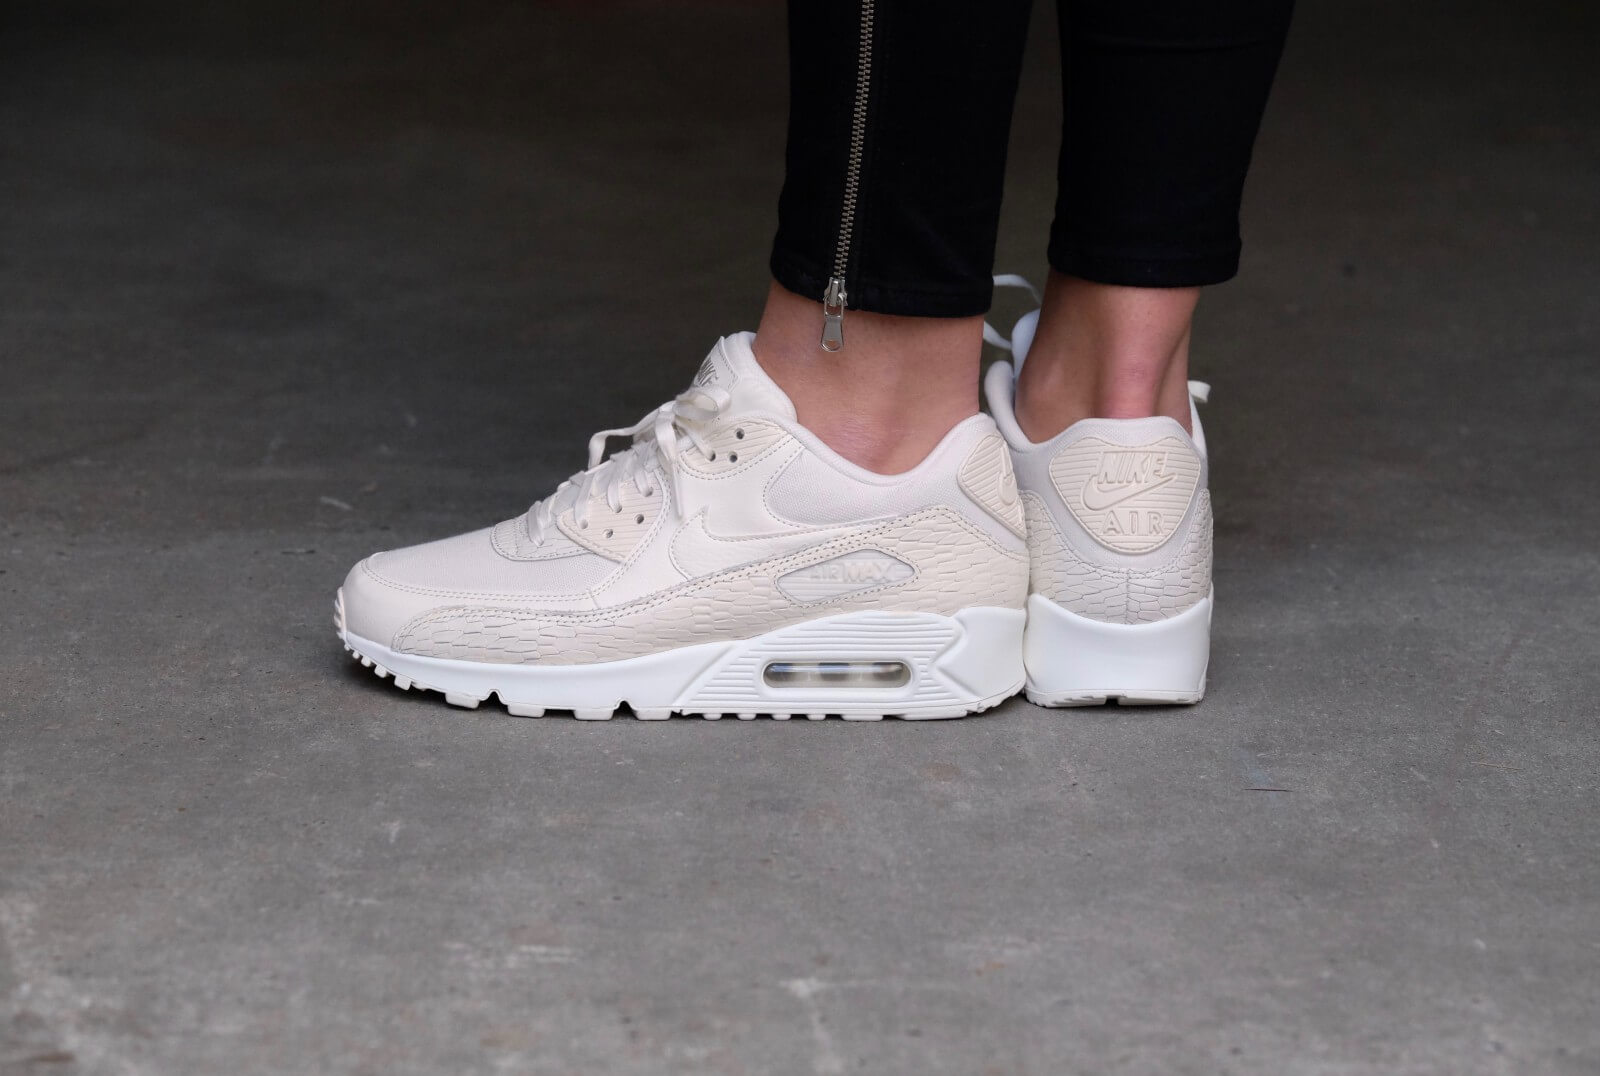 Nike WMNS Air Max 90 PRM LEA SailSail Light Bone White 904535 100